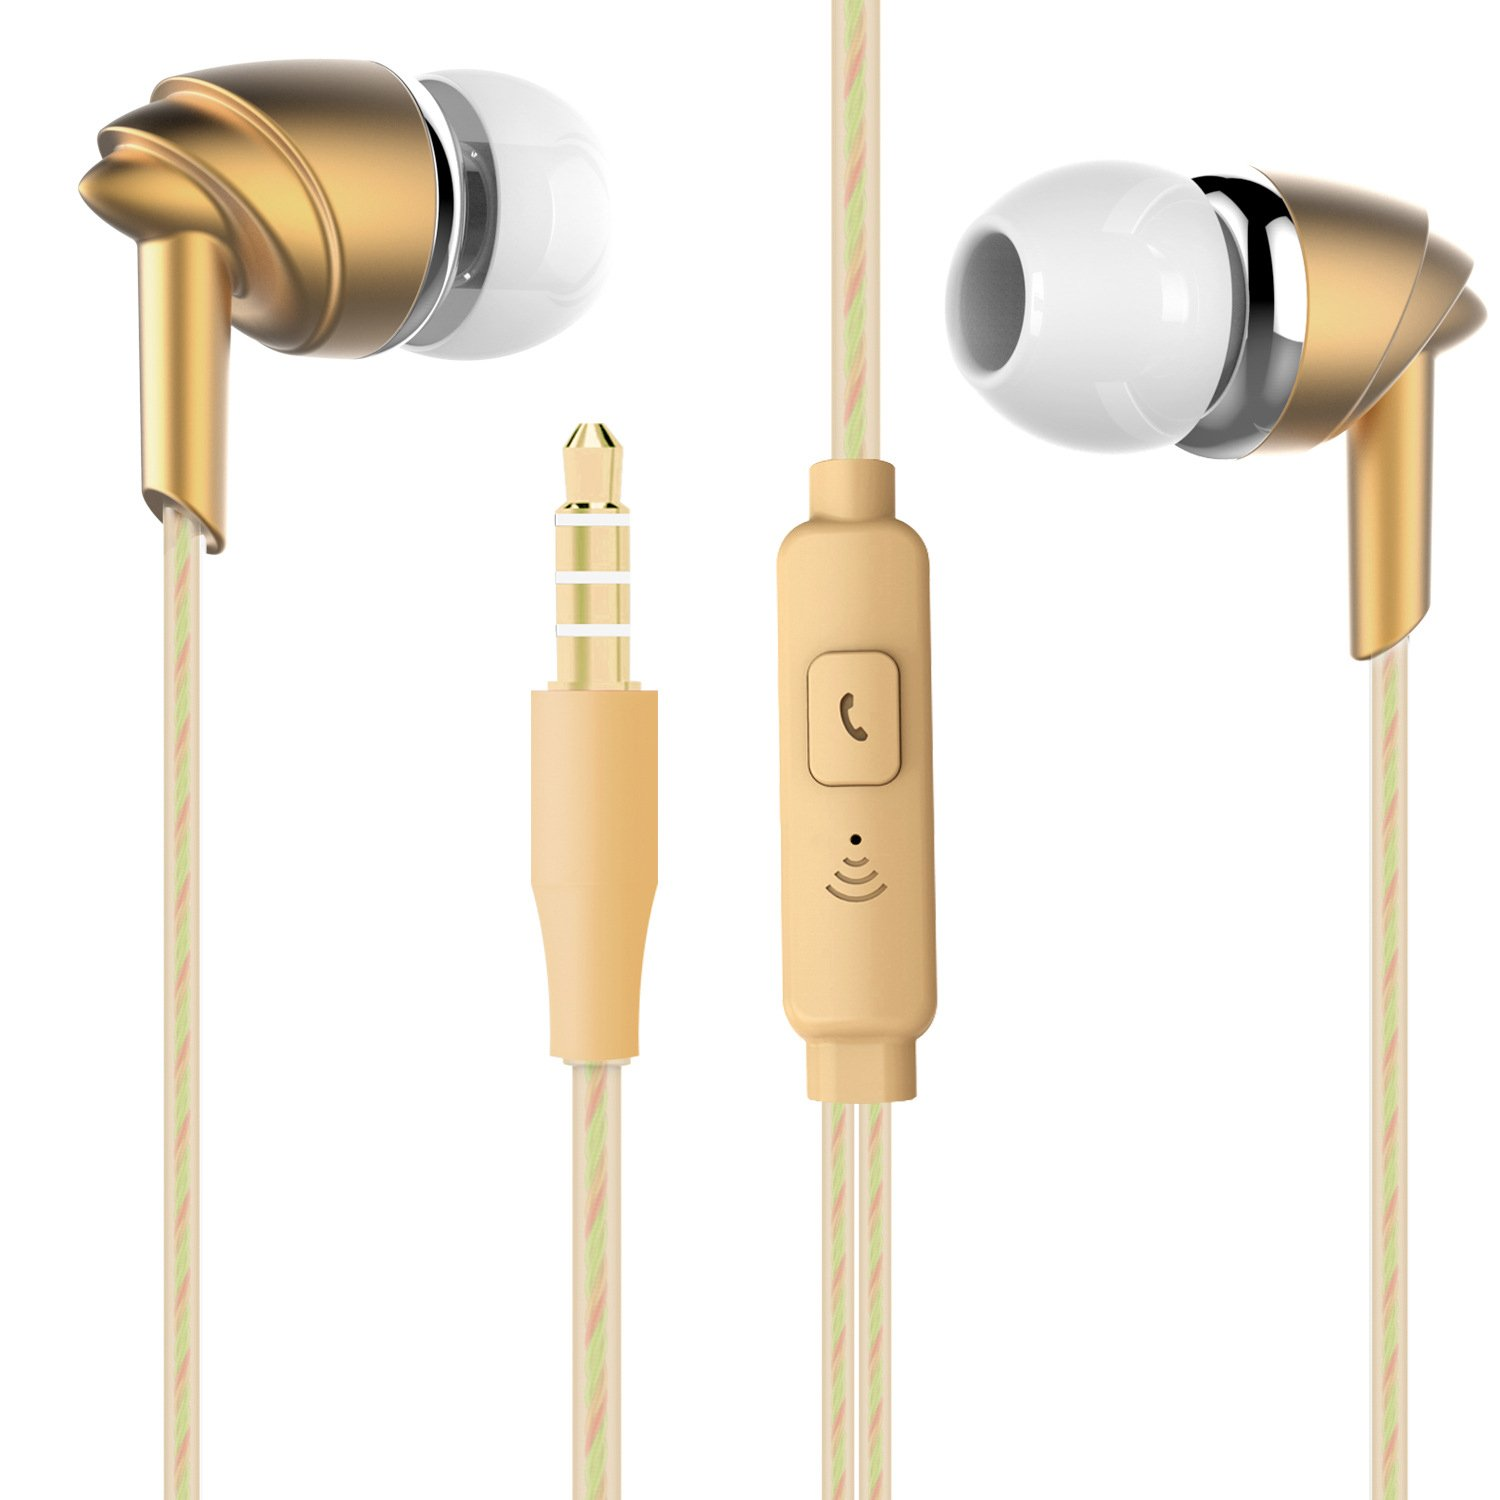 Licoers Headphones, Stereo Sound Headphones Wired Earphones in-Ear Earphones with Volume Control Earbuds with Mic for Mobile Phone PC MP3 4 Gold